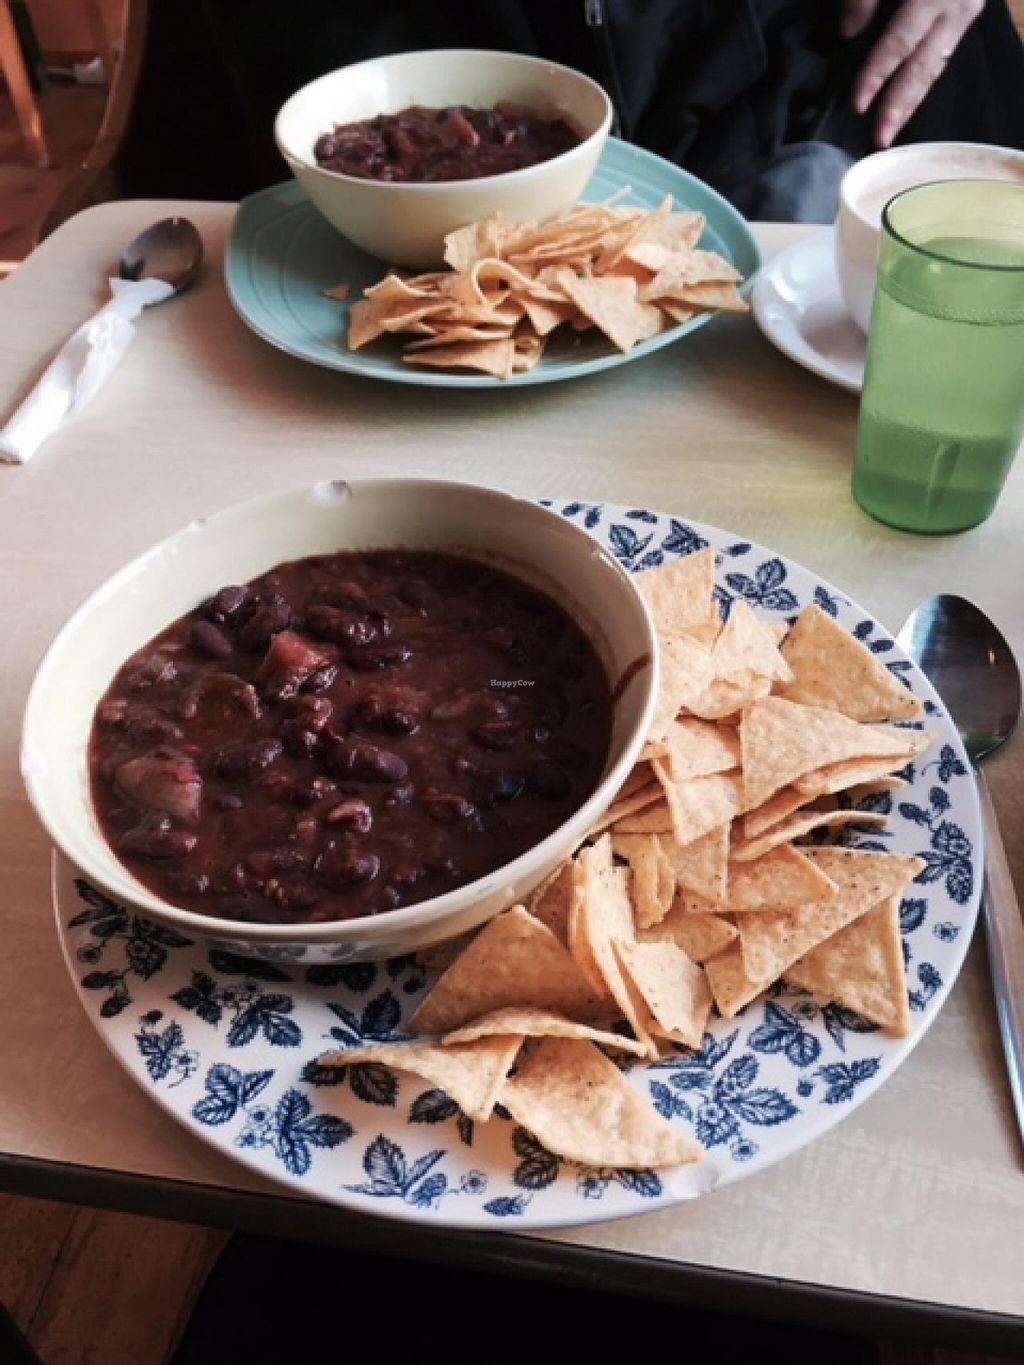 """Photo of Cafe Babalu  by <a href=""""/members/profile/Shel%20Graves"""">Shel Graves</a> <br/>Veggie chili <br/> March 30, 2015  - <a href='/contact/abuse/image/23014/97387'>Report</a>"""